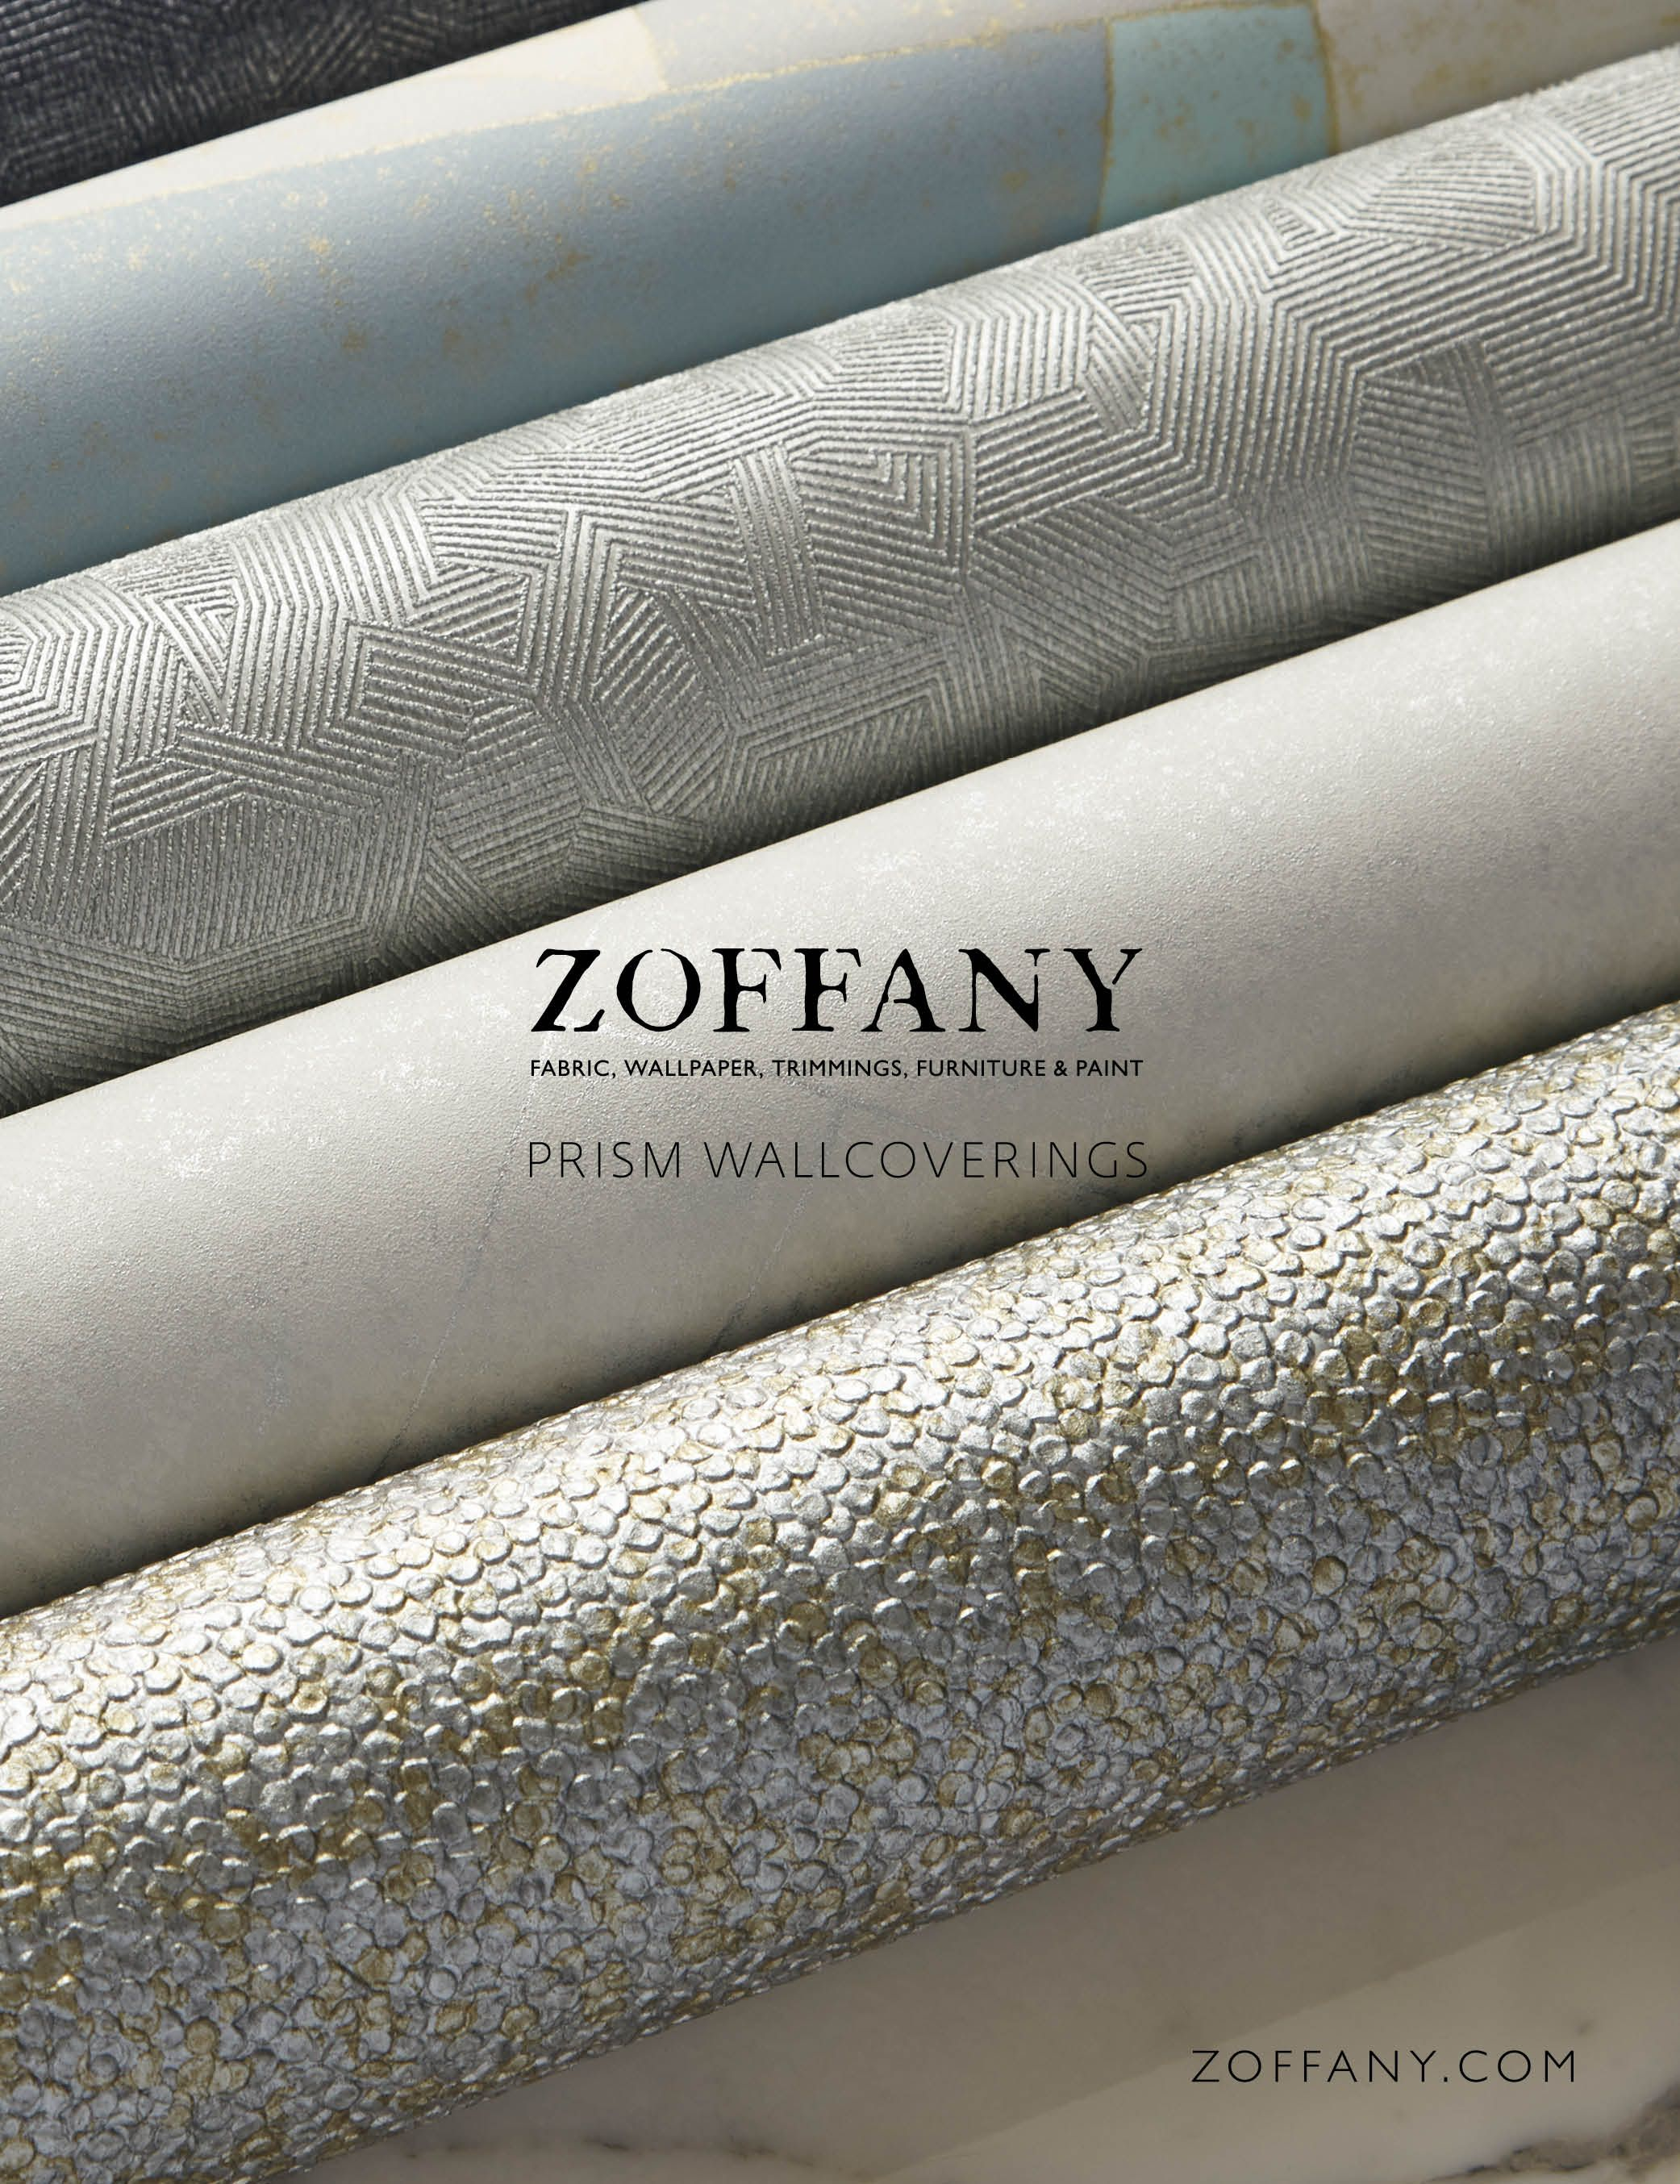 Zoffany prism wallcoverings google search wall pinterest